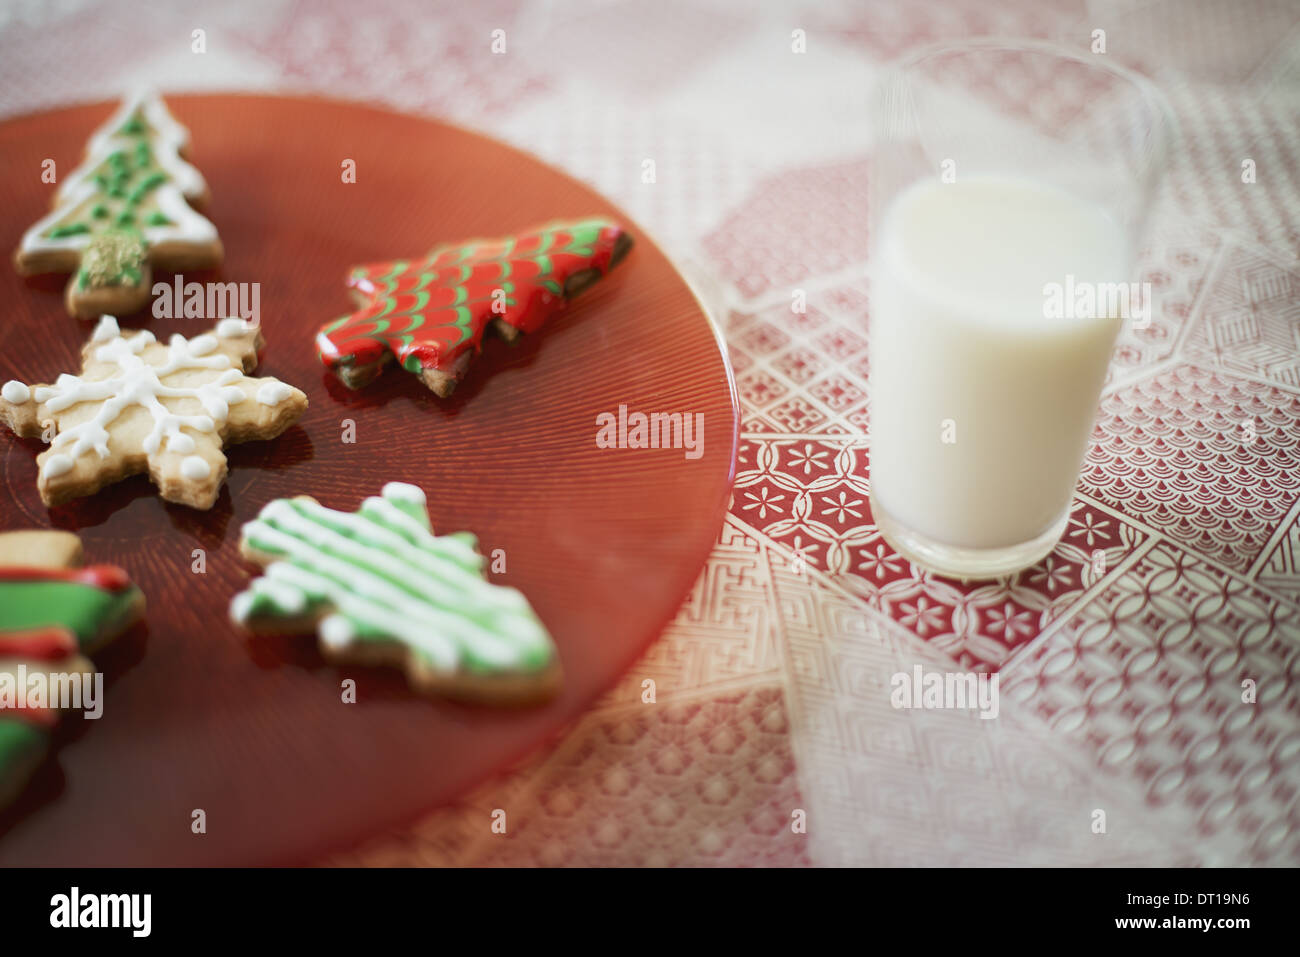 Woodstock, New York USA maison bio biscuits de Noël verre de lait Photo Stock